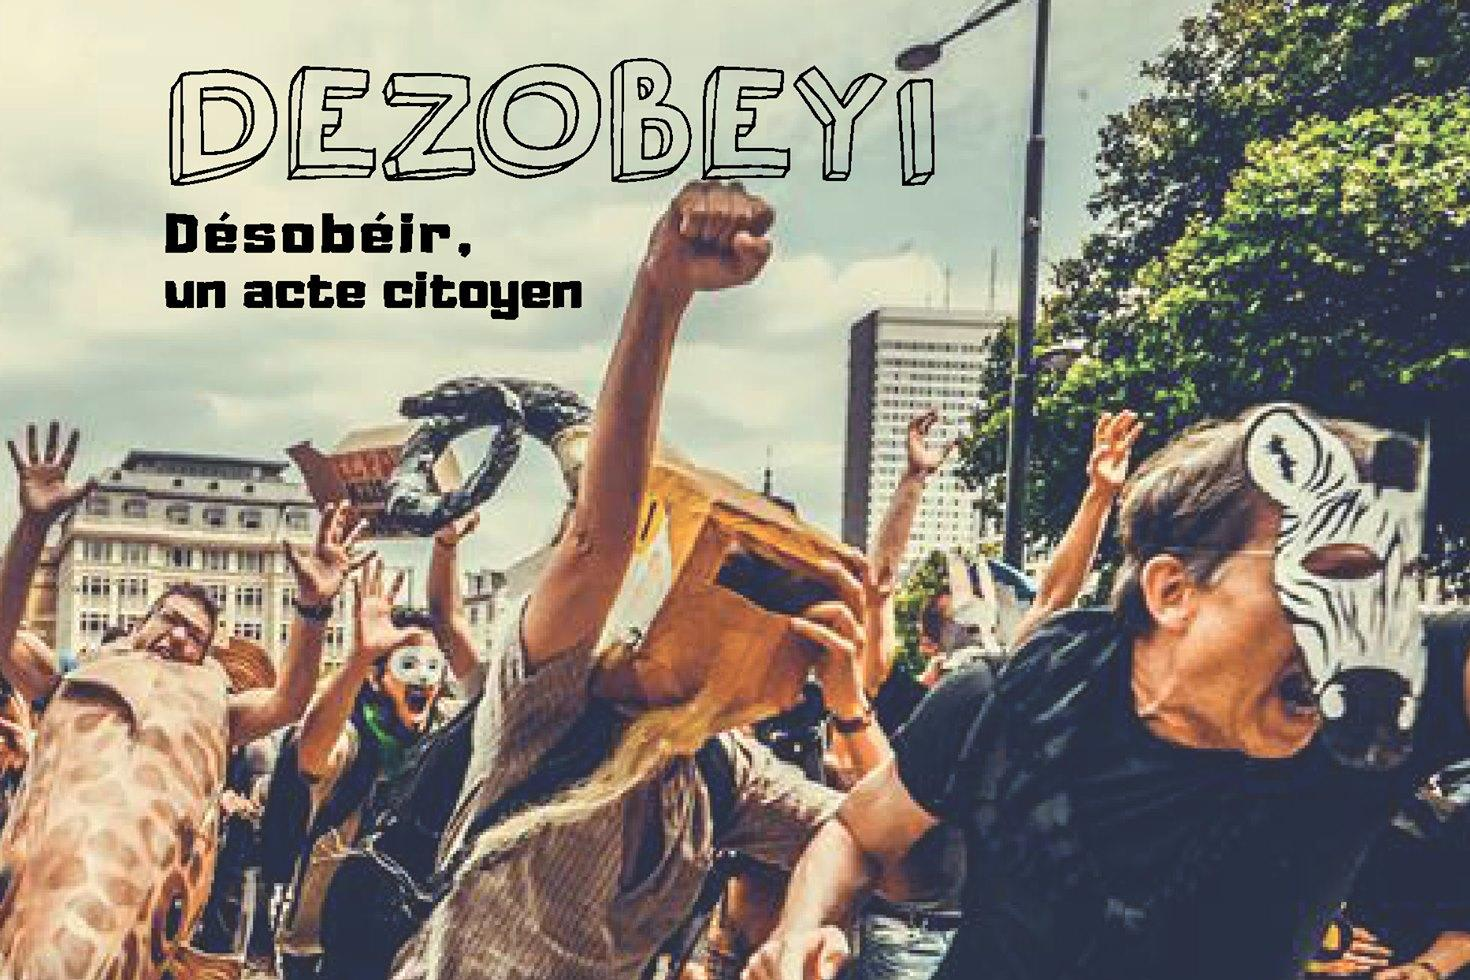 Animation Dezobeyi